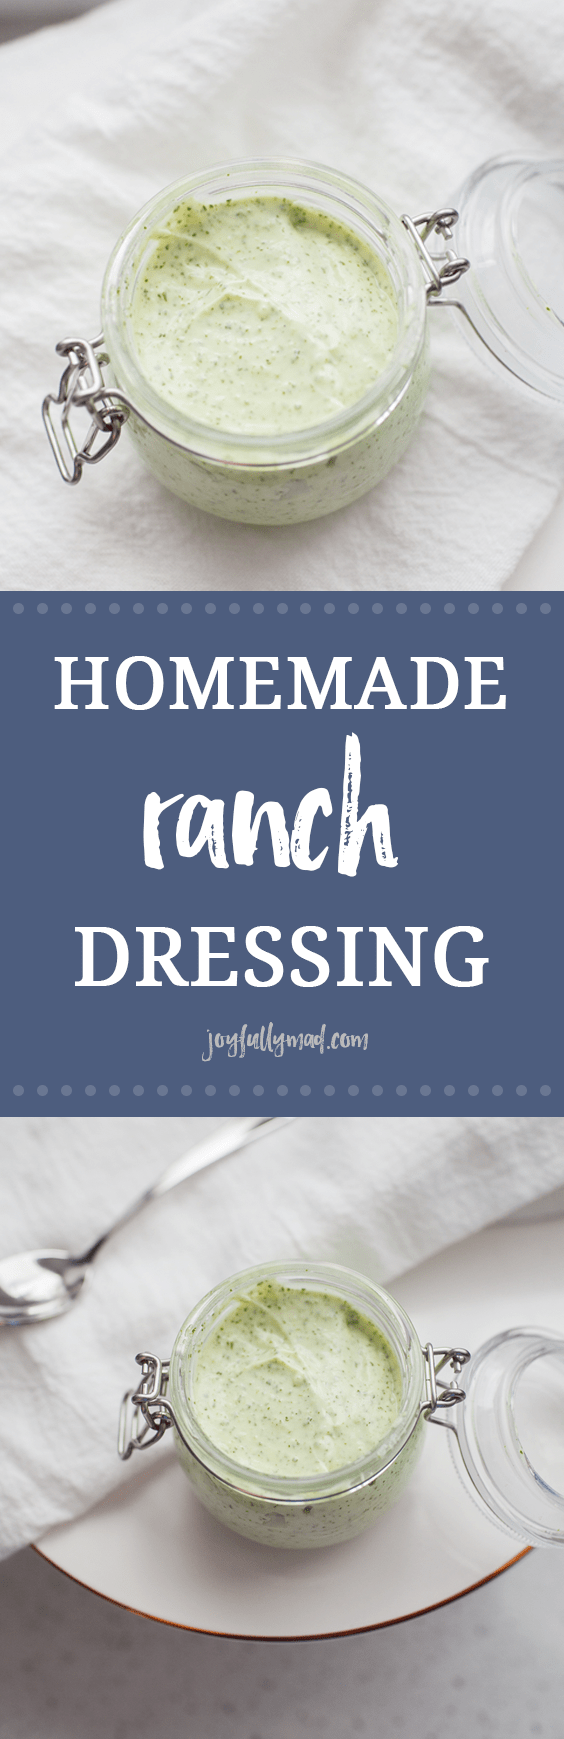 This homemade ranch dressing is made with five simple ingredients and after you make it, you may never buy a bottle of ranch again!